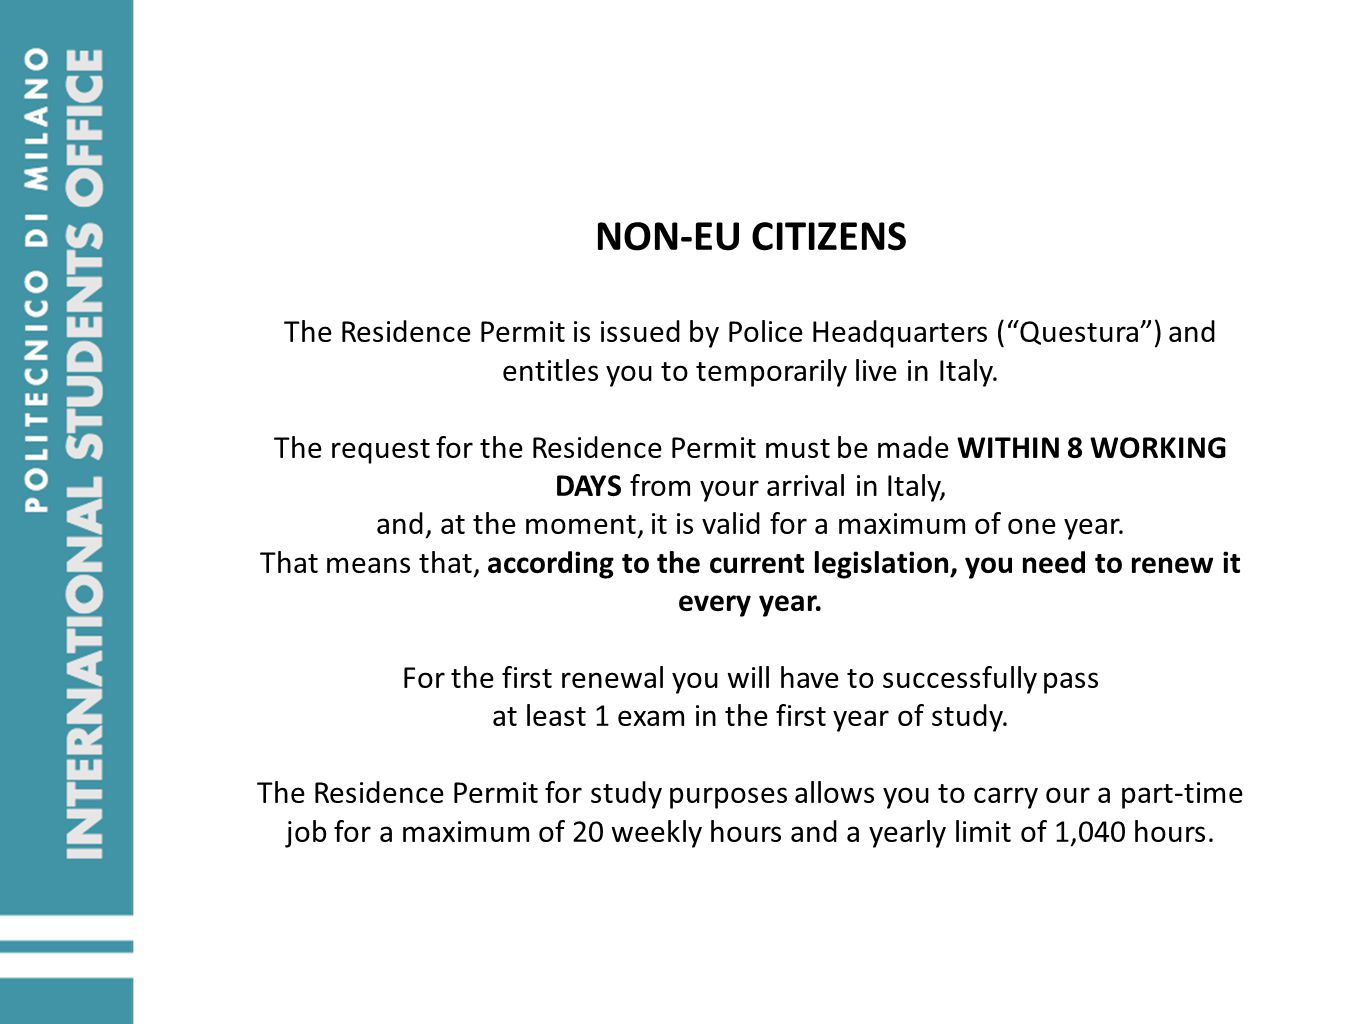 NON-EU CITIZENS The Residence Permit is issued by Police Headquarters (Questura) and entitles you to temporarily live in Italy. The request for the Re